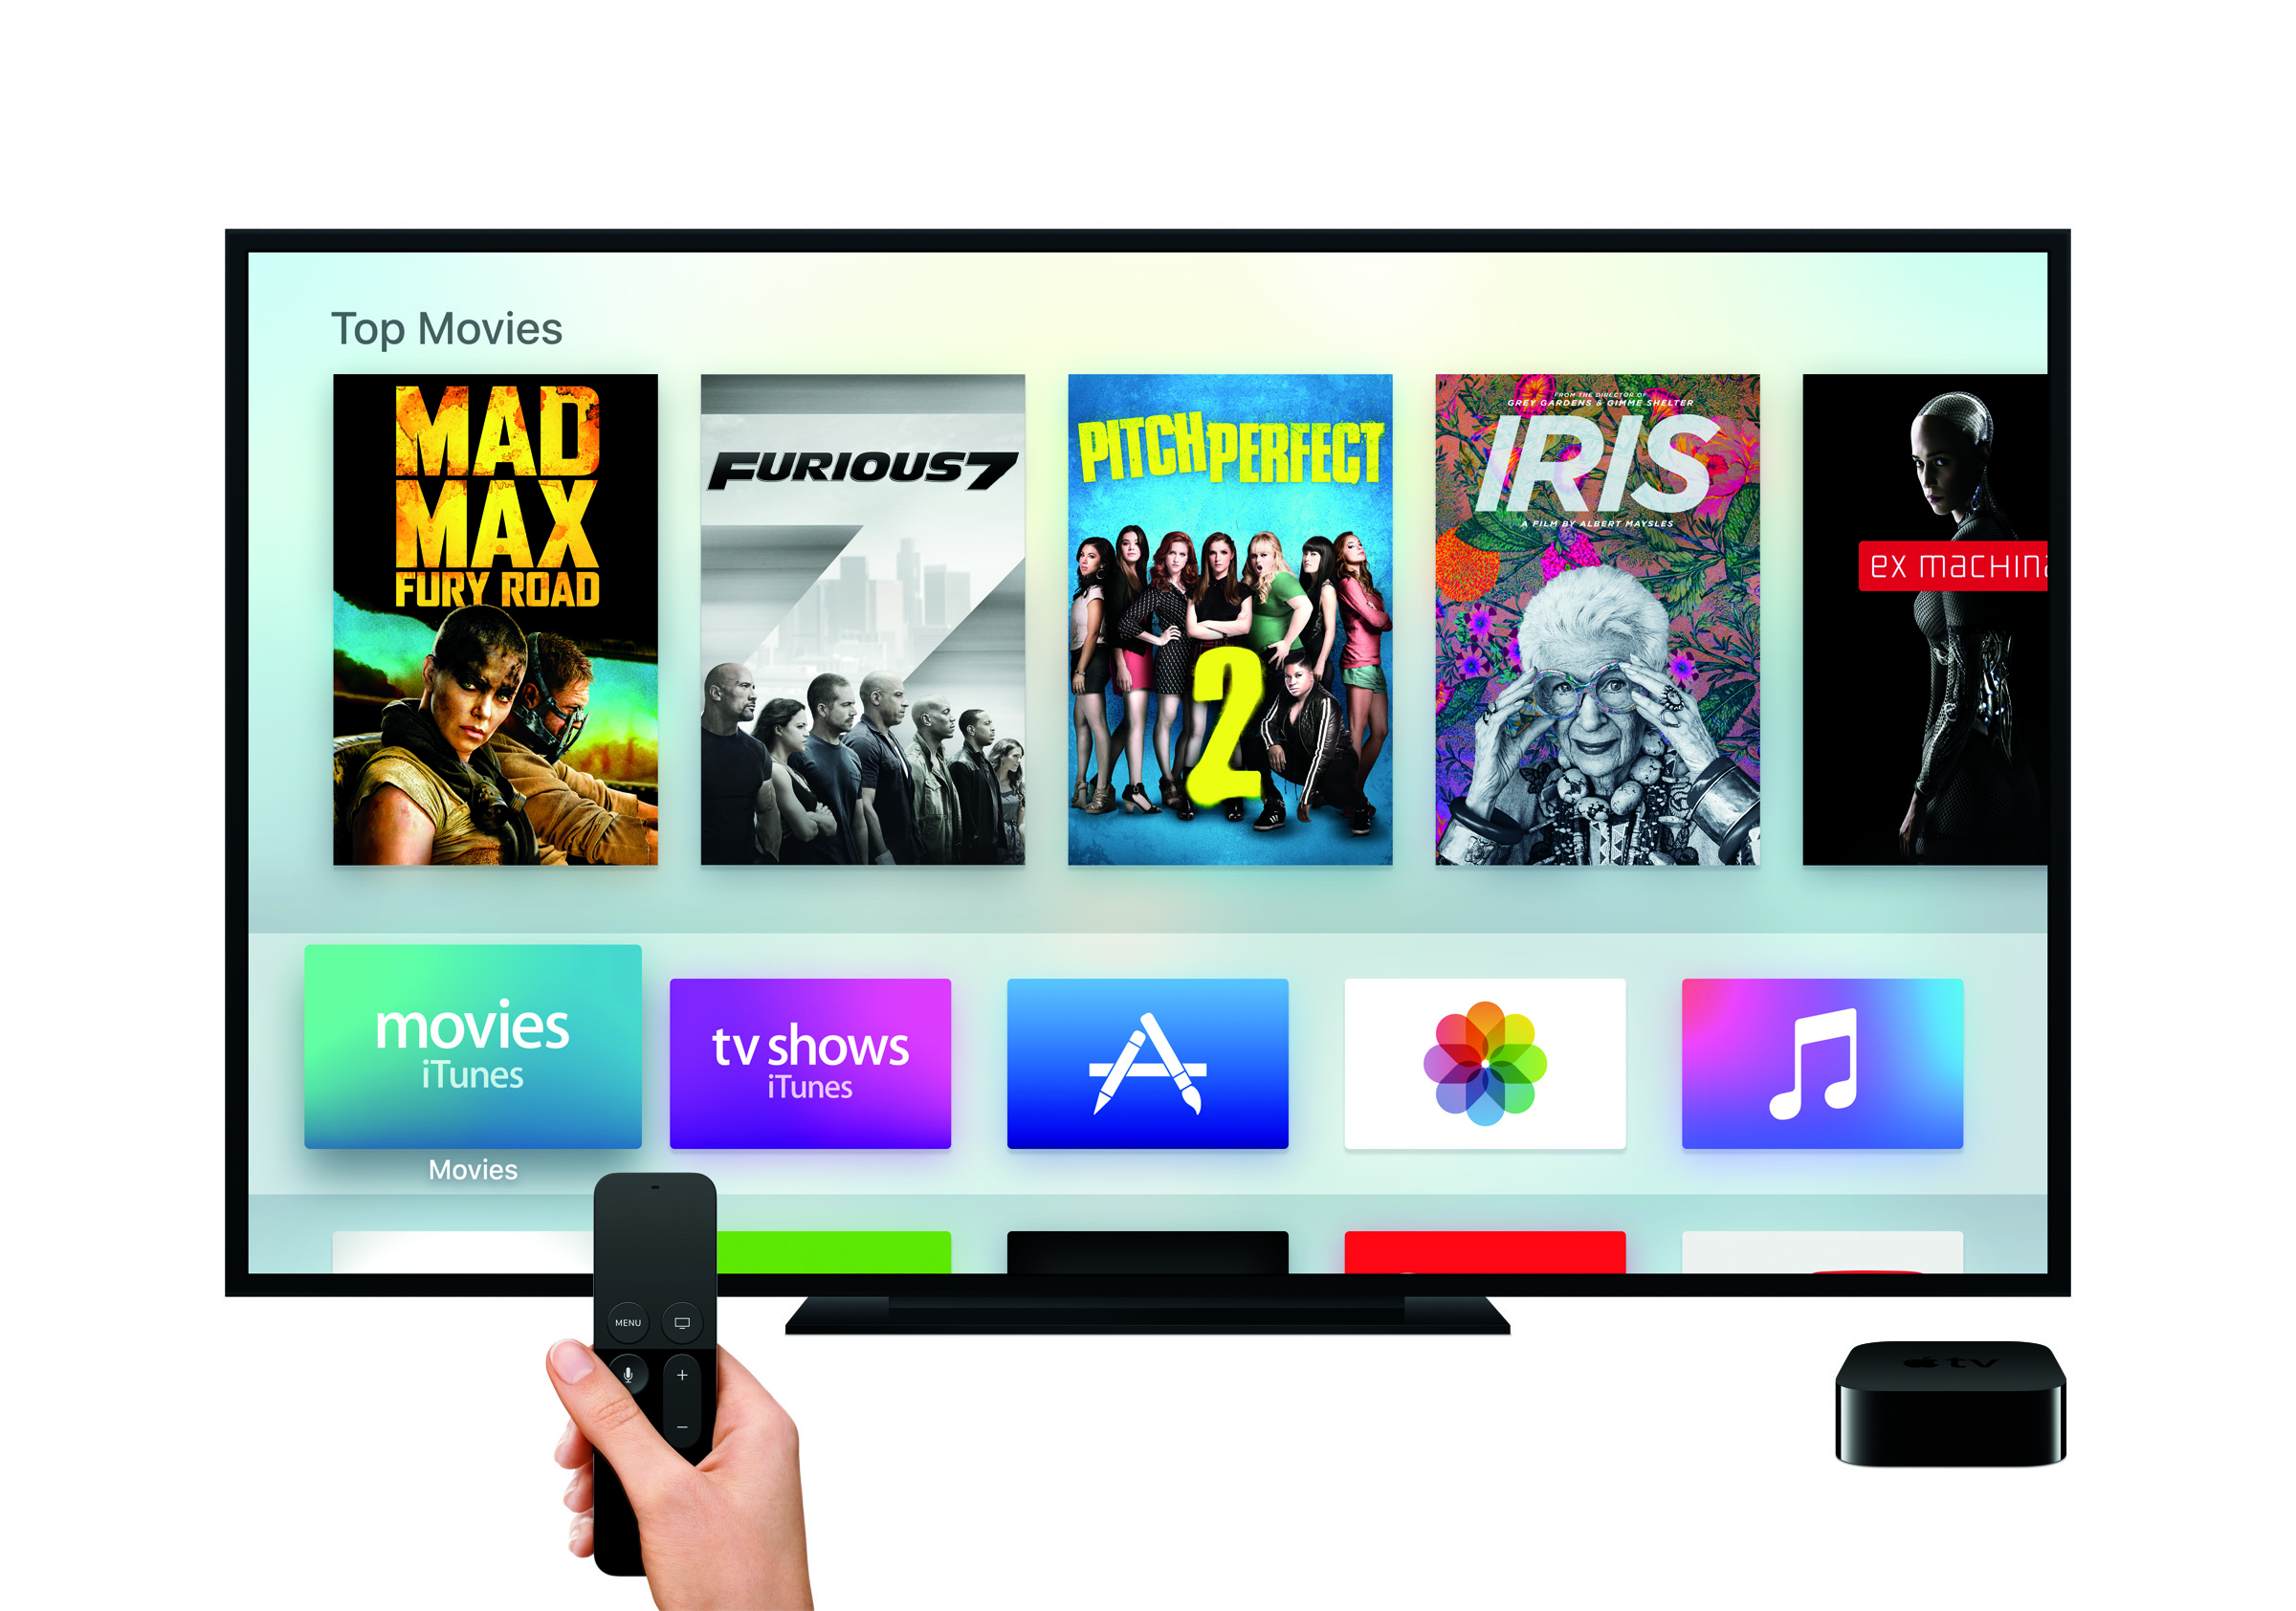 Siri remote, tvOS, and the App Store running on the new Apple TV